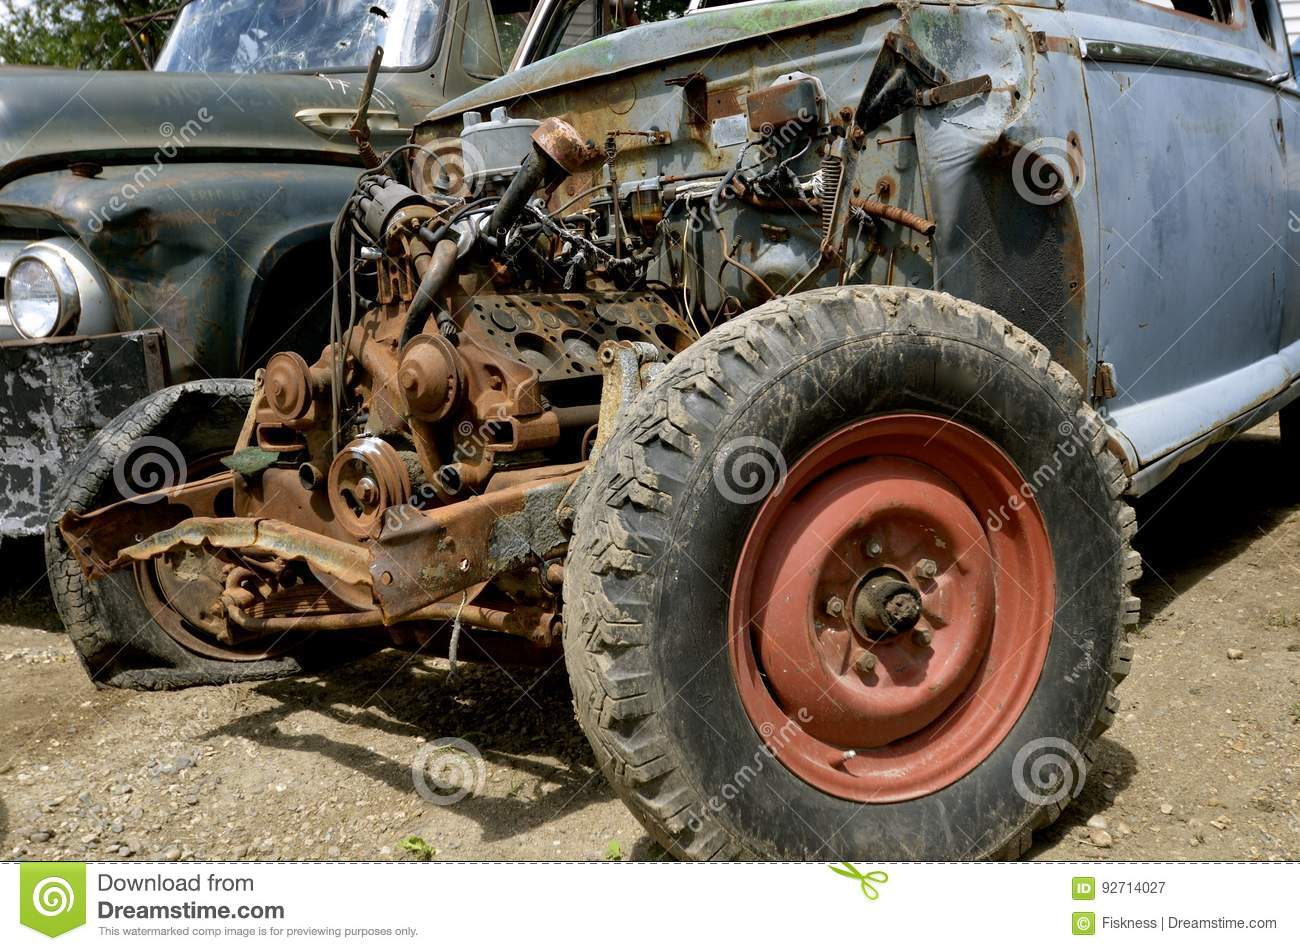 Old rusty car engine stock image. Image of engine, firewall - 92714027